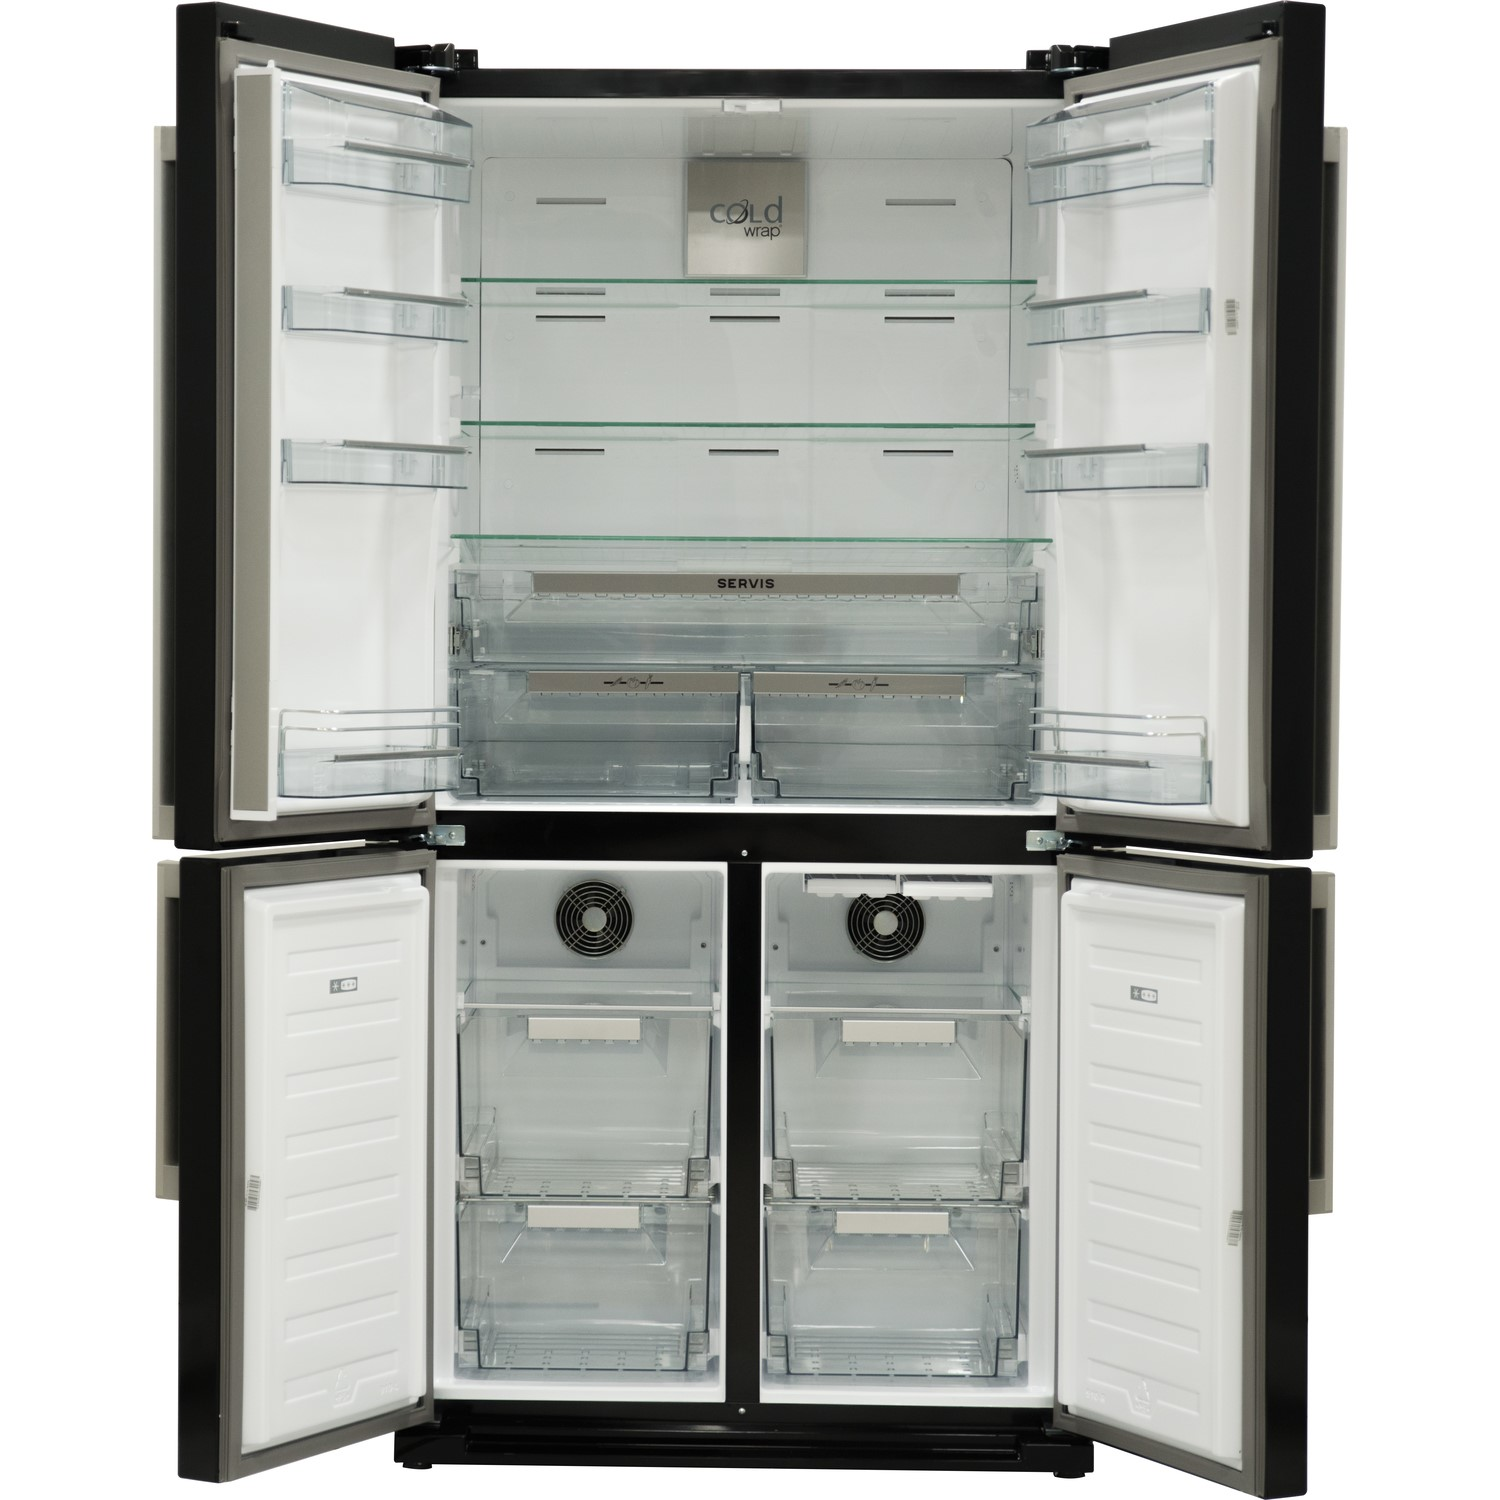 servis fd911k large capacity american fridge freezer black